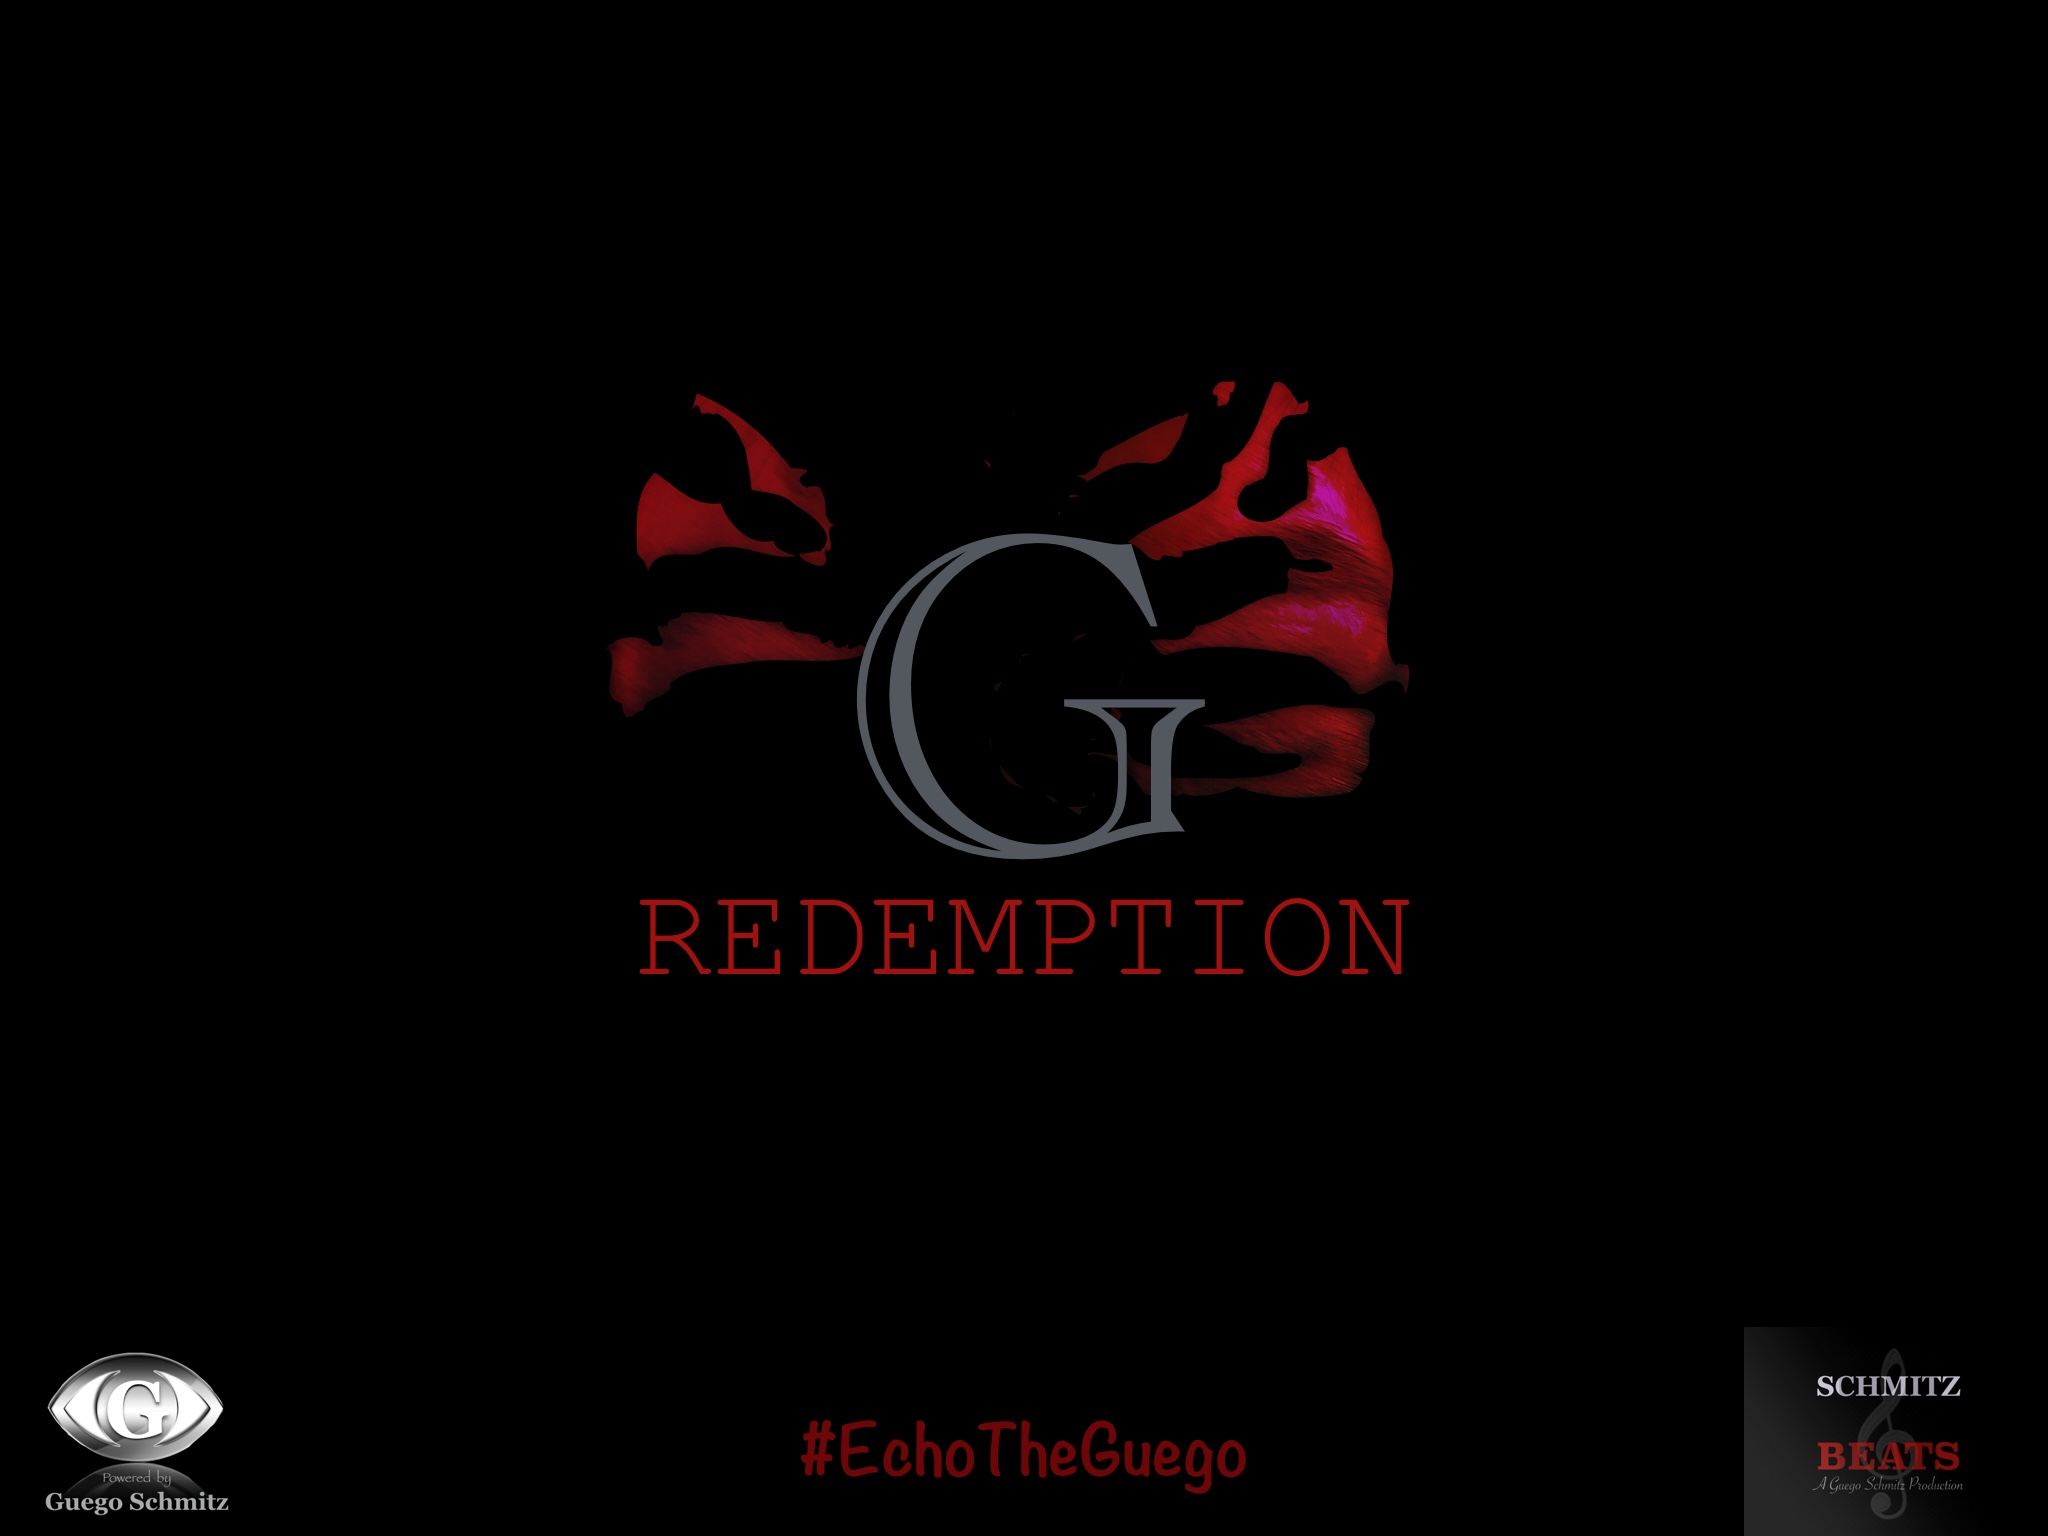 "NEW?From ""Redemption"" Project! Listen to ""Vengeance"" by G @SchmitzBeats #NP on #SoundCloud #SchmitzBeats Redemption #EchoTheGuego ?G"